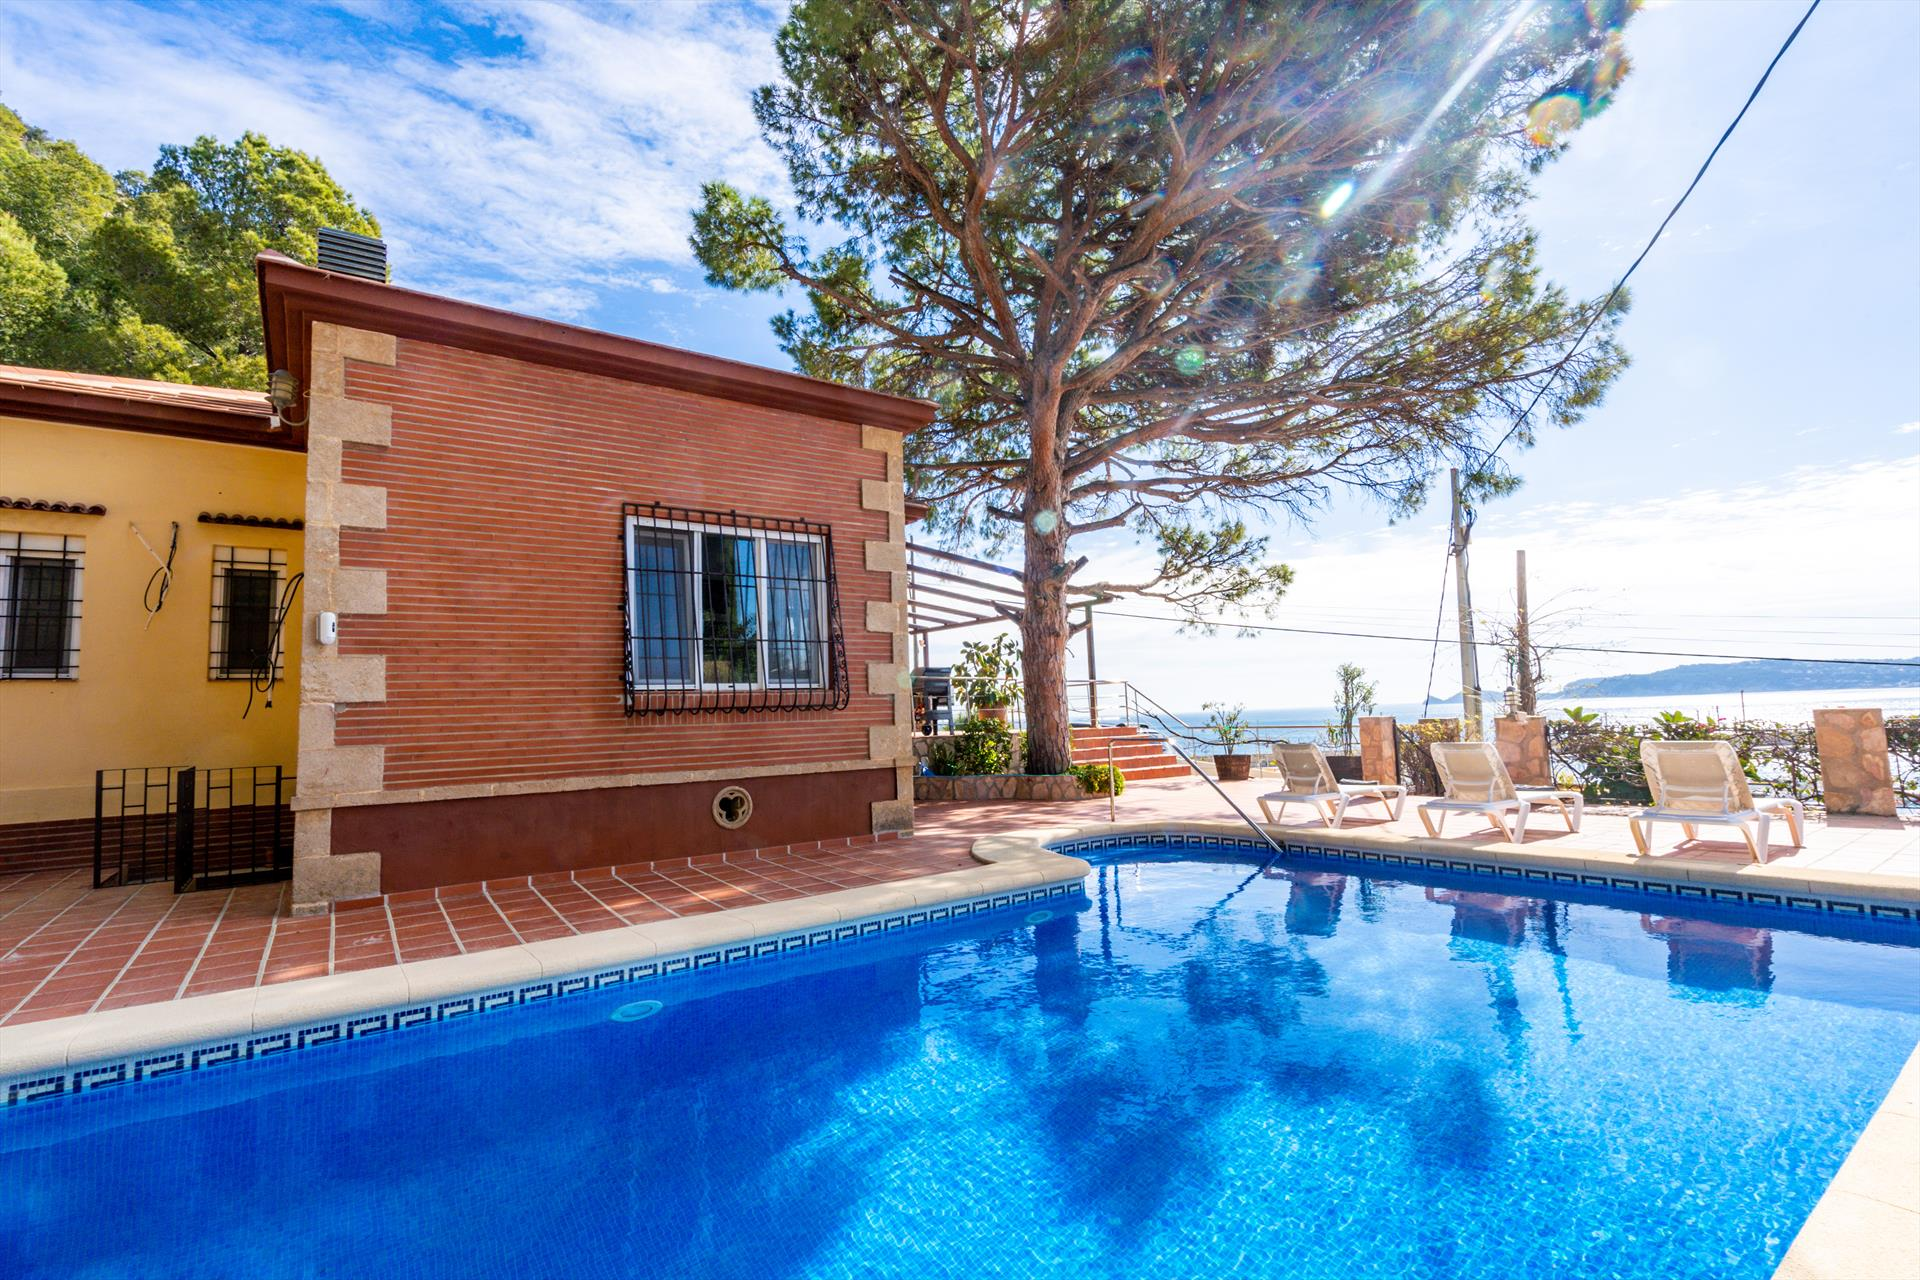 Puerto Paraiso 6 pax, Beautiful and romantic villa in Javea, on the Costa Blanca, Spain  with private pool for 6 persons...